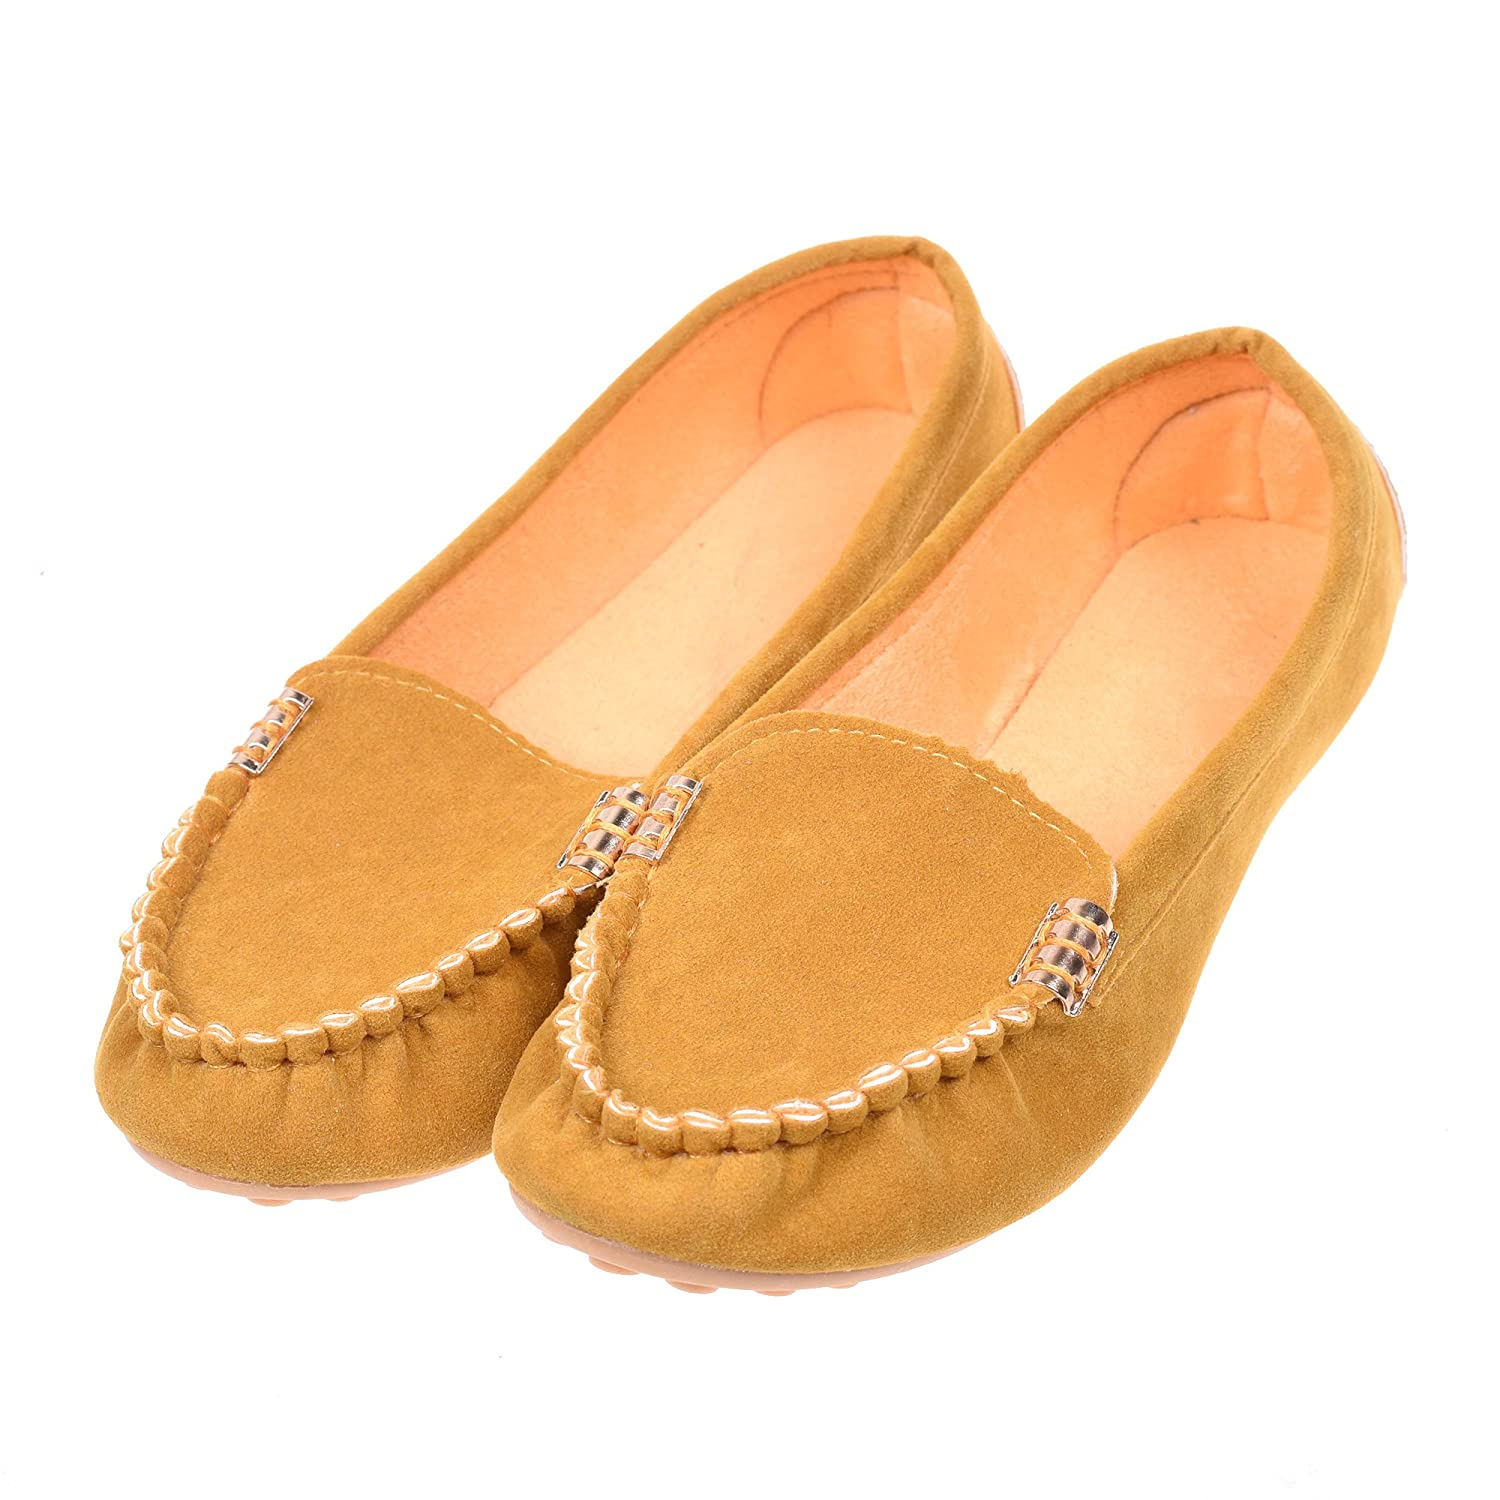 Kloud City Women鈥檚 Flat Shoes Suede Soft Slip-On Loafers Boat Shoes Indoor Outdoor Casual Shoe